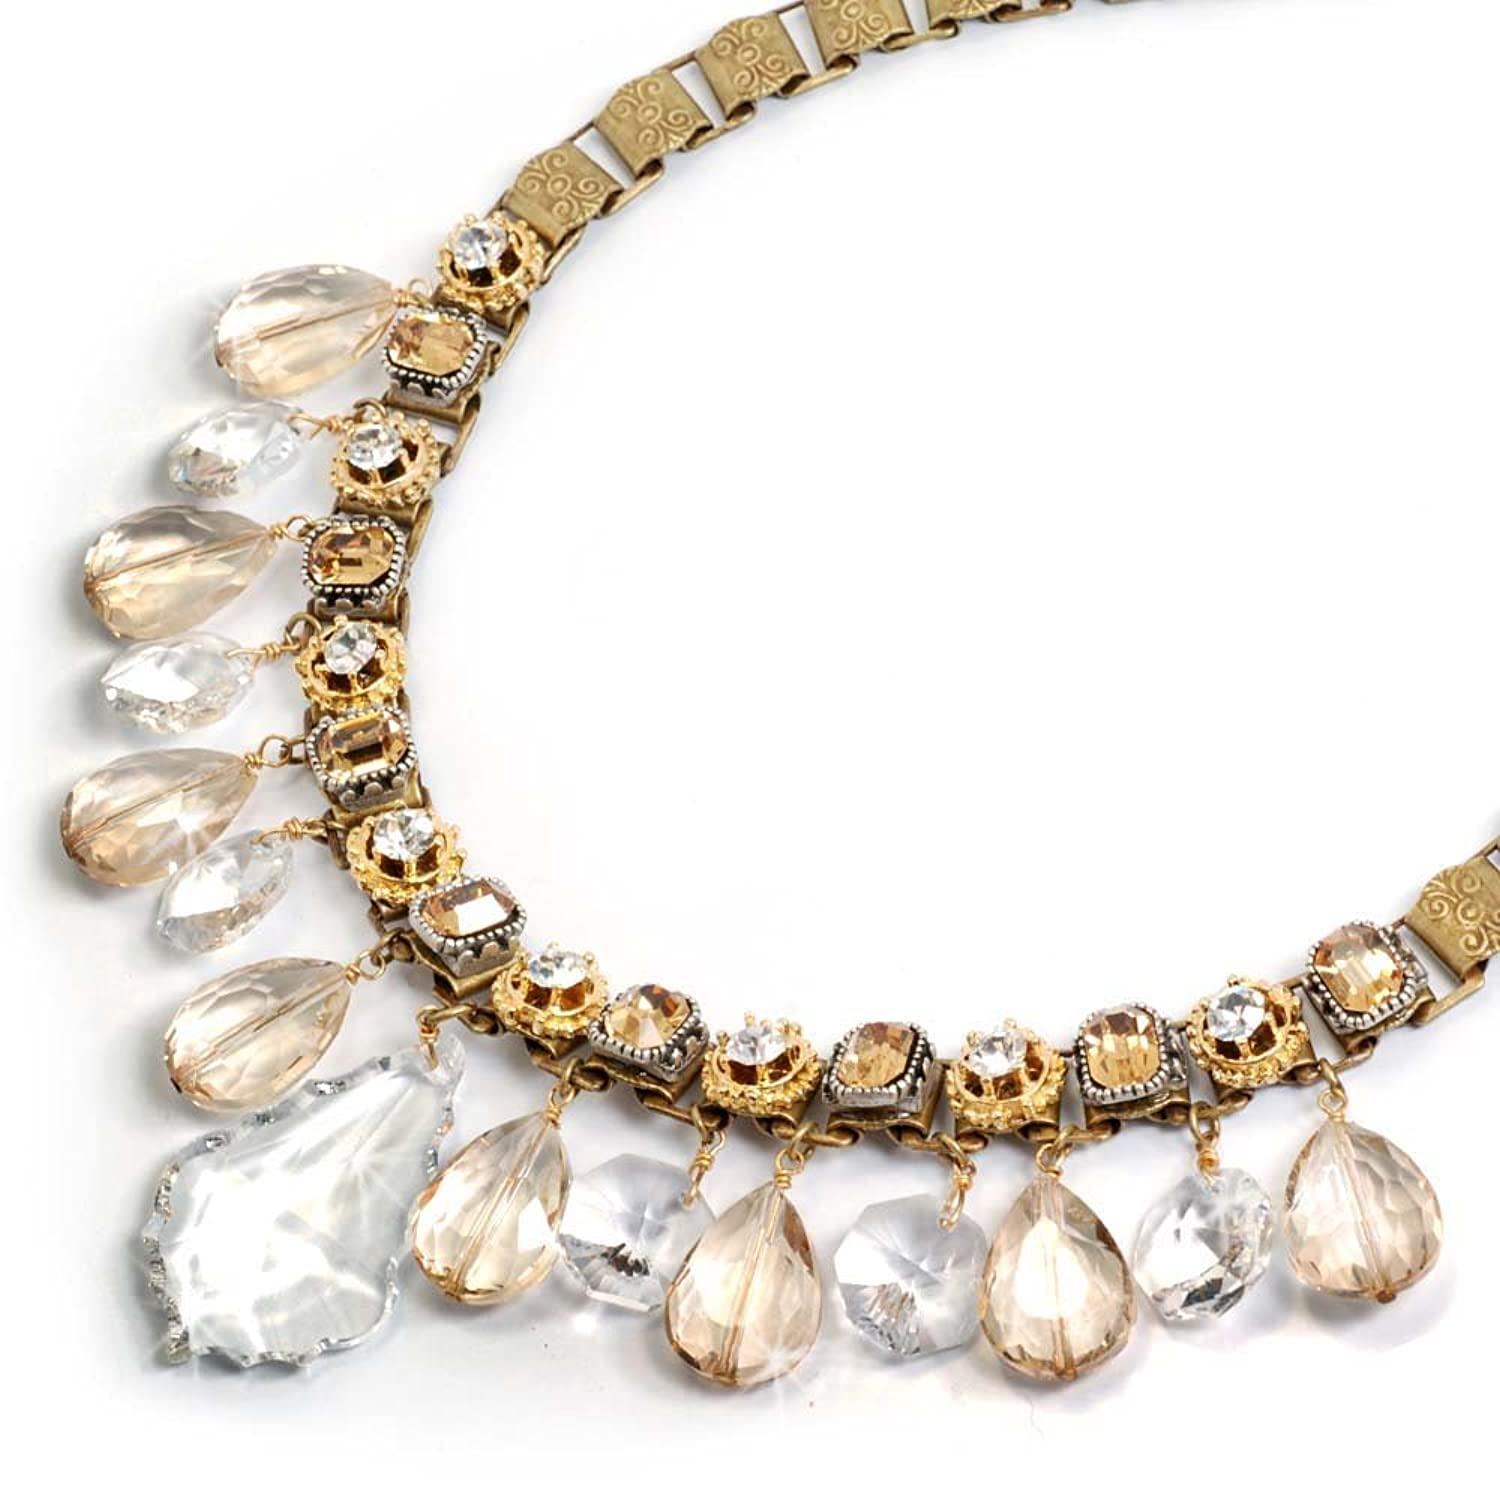 1950s Costume Jewelry Champagne On Ice Collar Necklace $115.00 AT vintagedancer.com